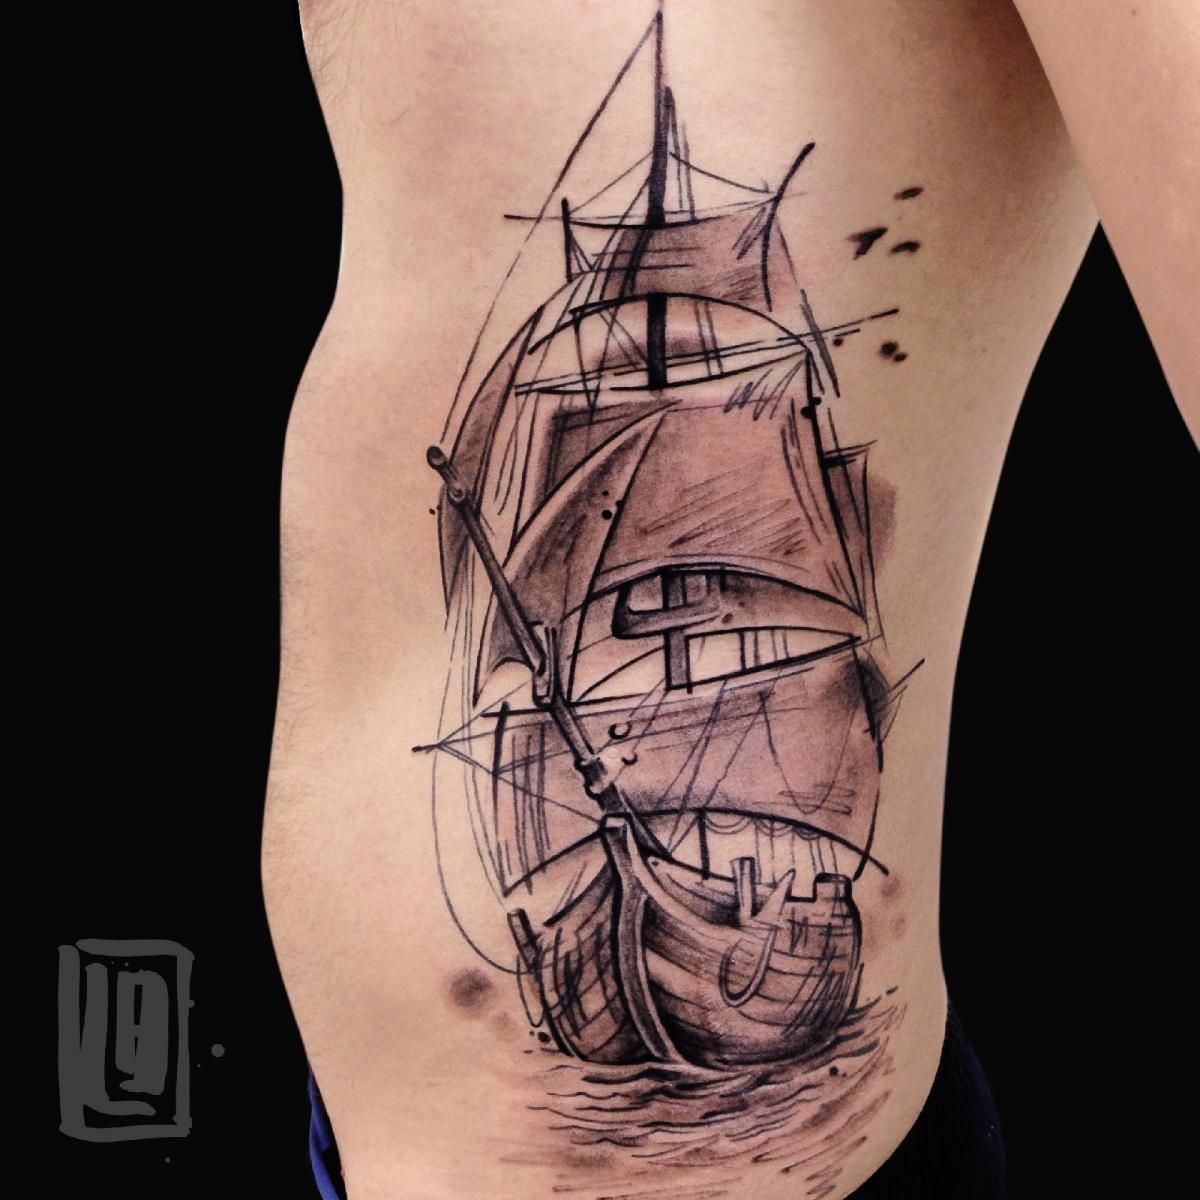 tattoo abstract sailingship luckybone avantgarde paint my tattoos. Black Bedroom Furniture Sets. Home Design Ideas